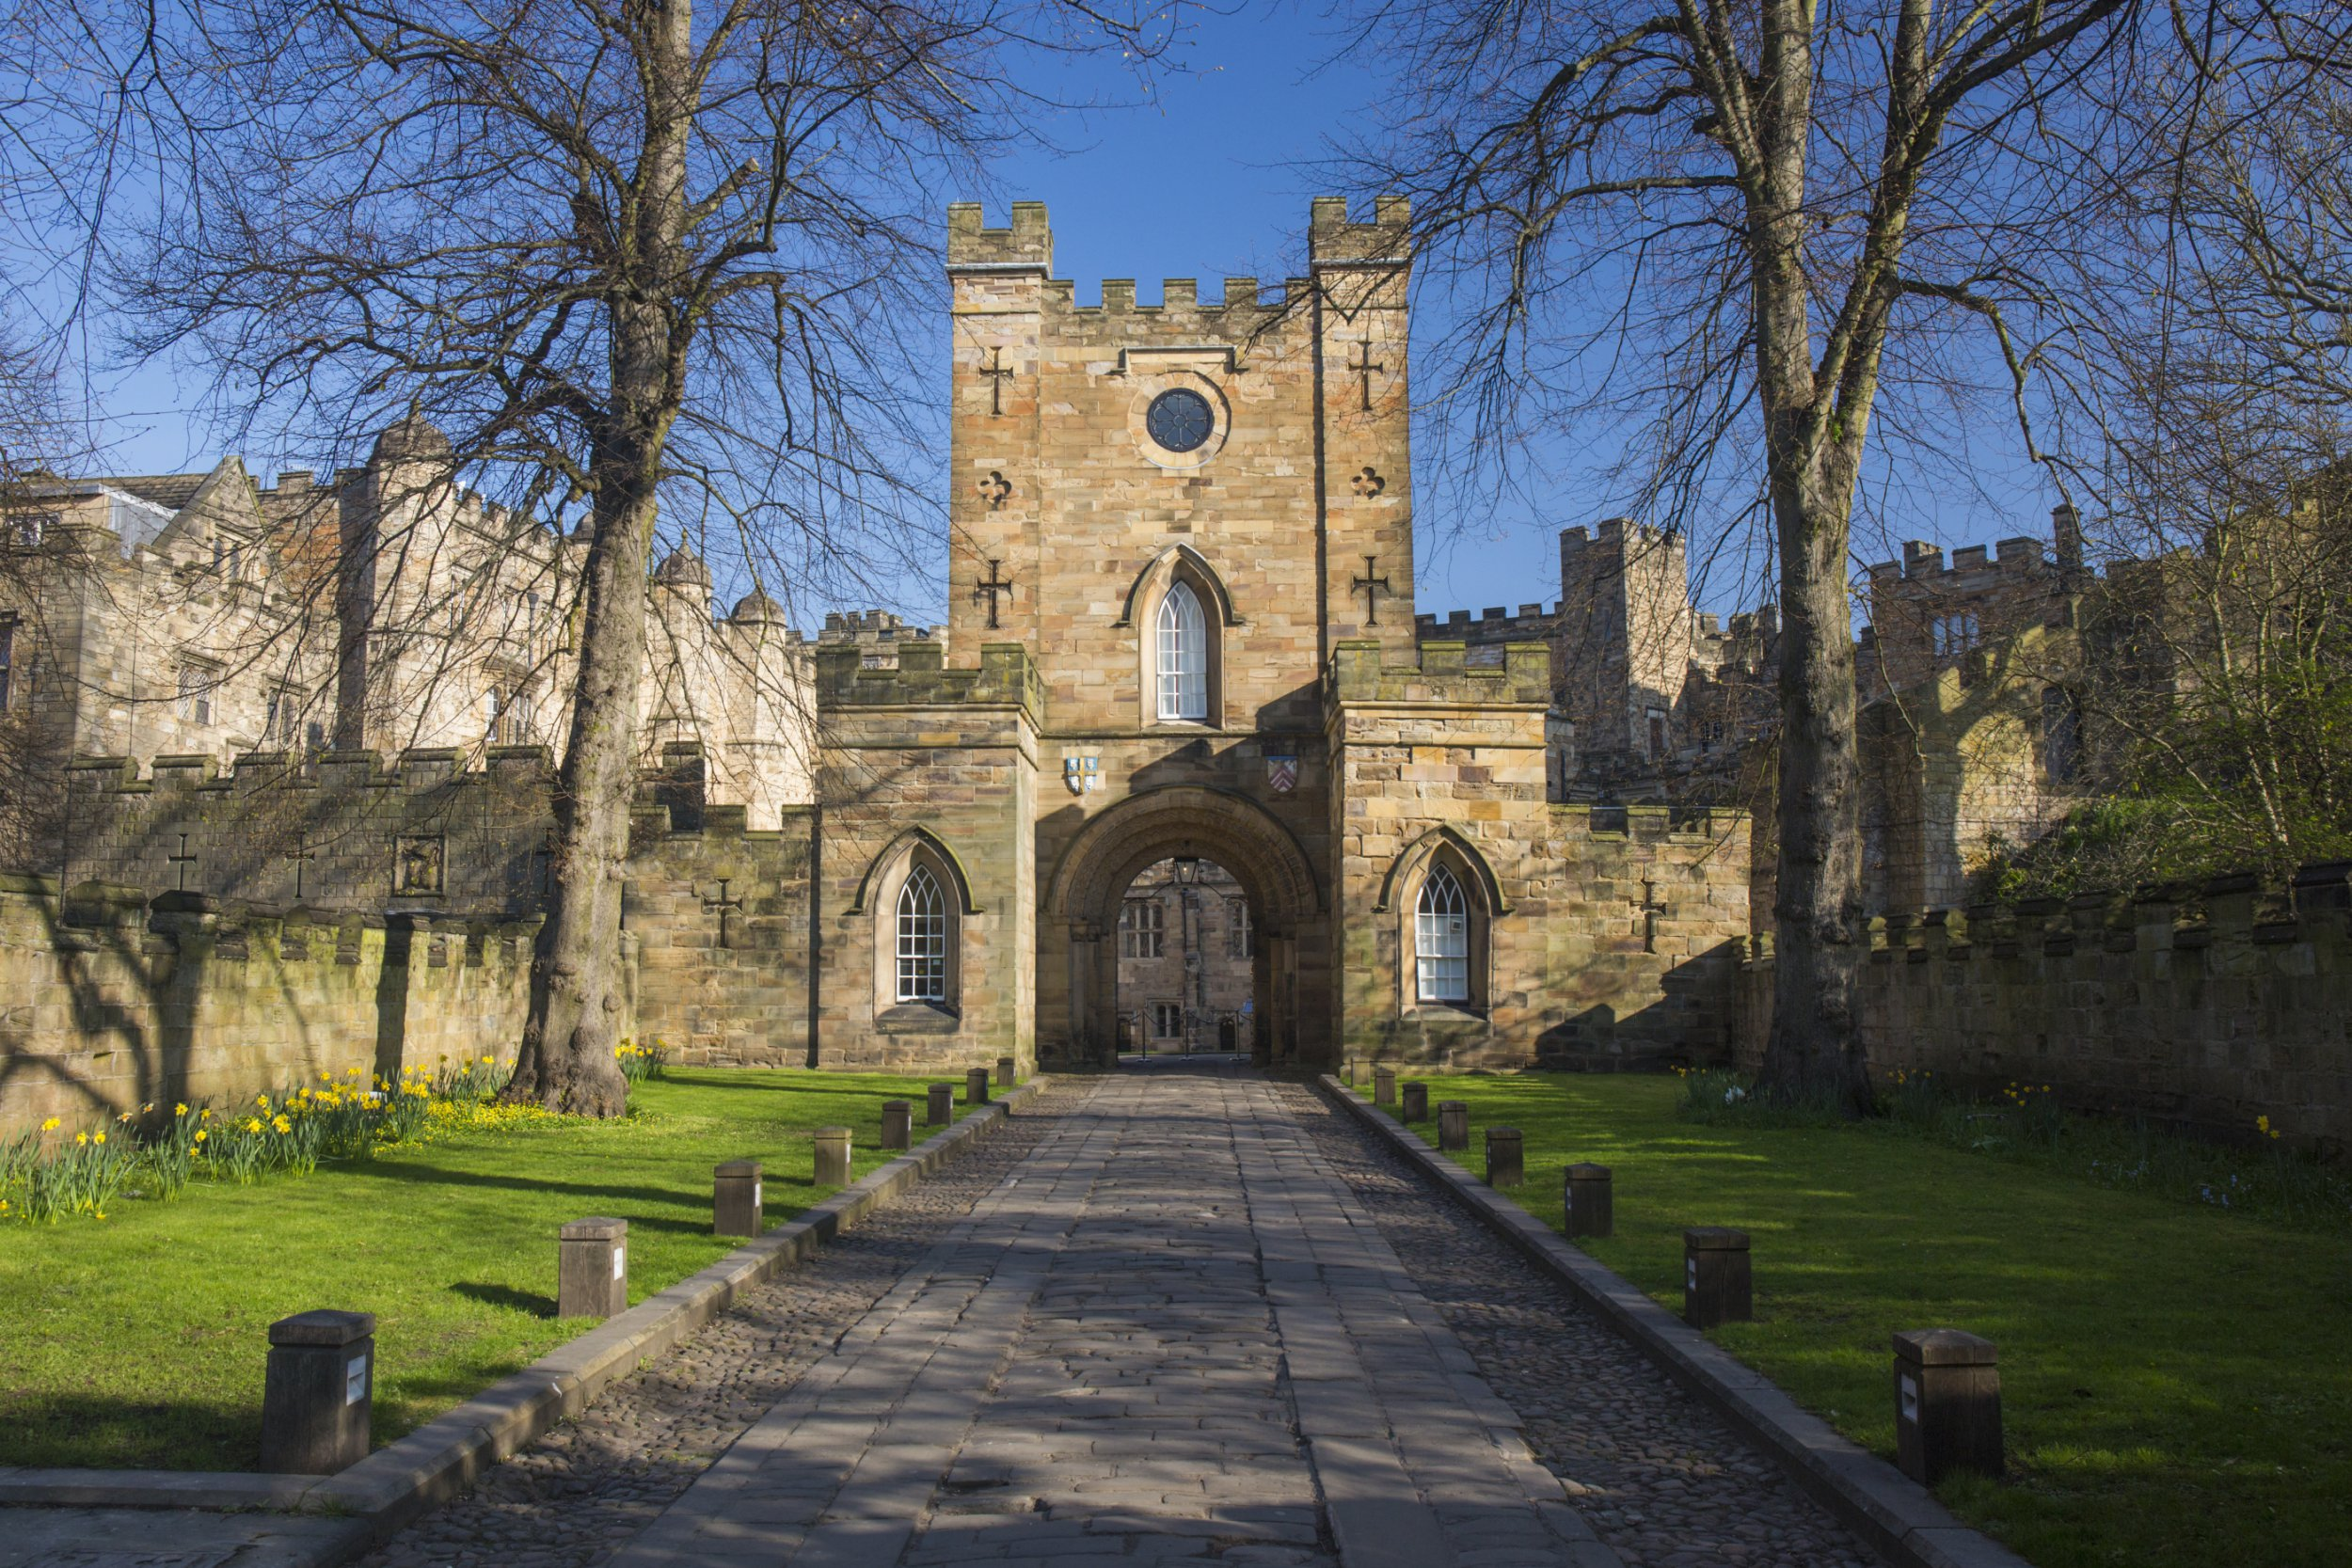 View from Palace Green to the Gatehouse of Durham Castle, Durham, County Durham, England, UK, Europe. The city of Durham, which lies on the River Wear a few miles south of Newcastle-upon-Tyne, is best known for its Norman cathedral and castle, which together were designated a UNESCO World Heritage Site in 1986. The city also boasts a prestigious university, said to be the oldest in England after Oxford and Cambridge, the castle having served as the home of University College since 1837.